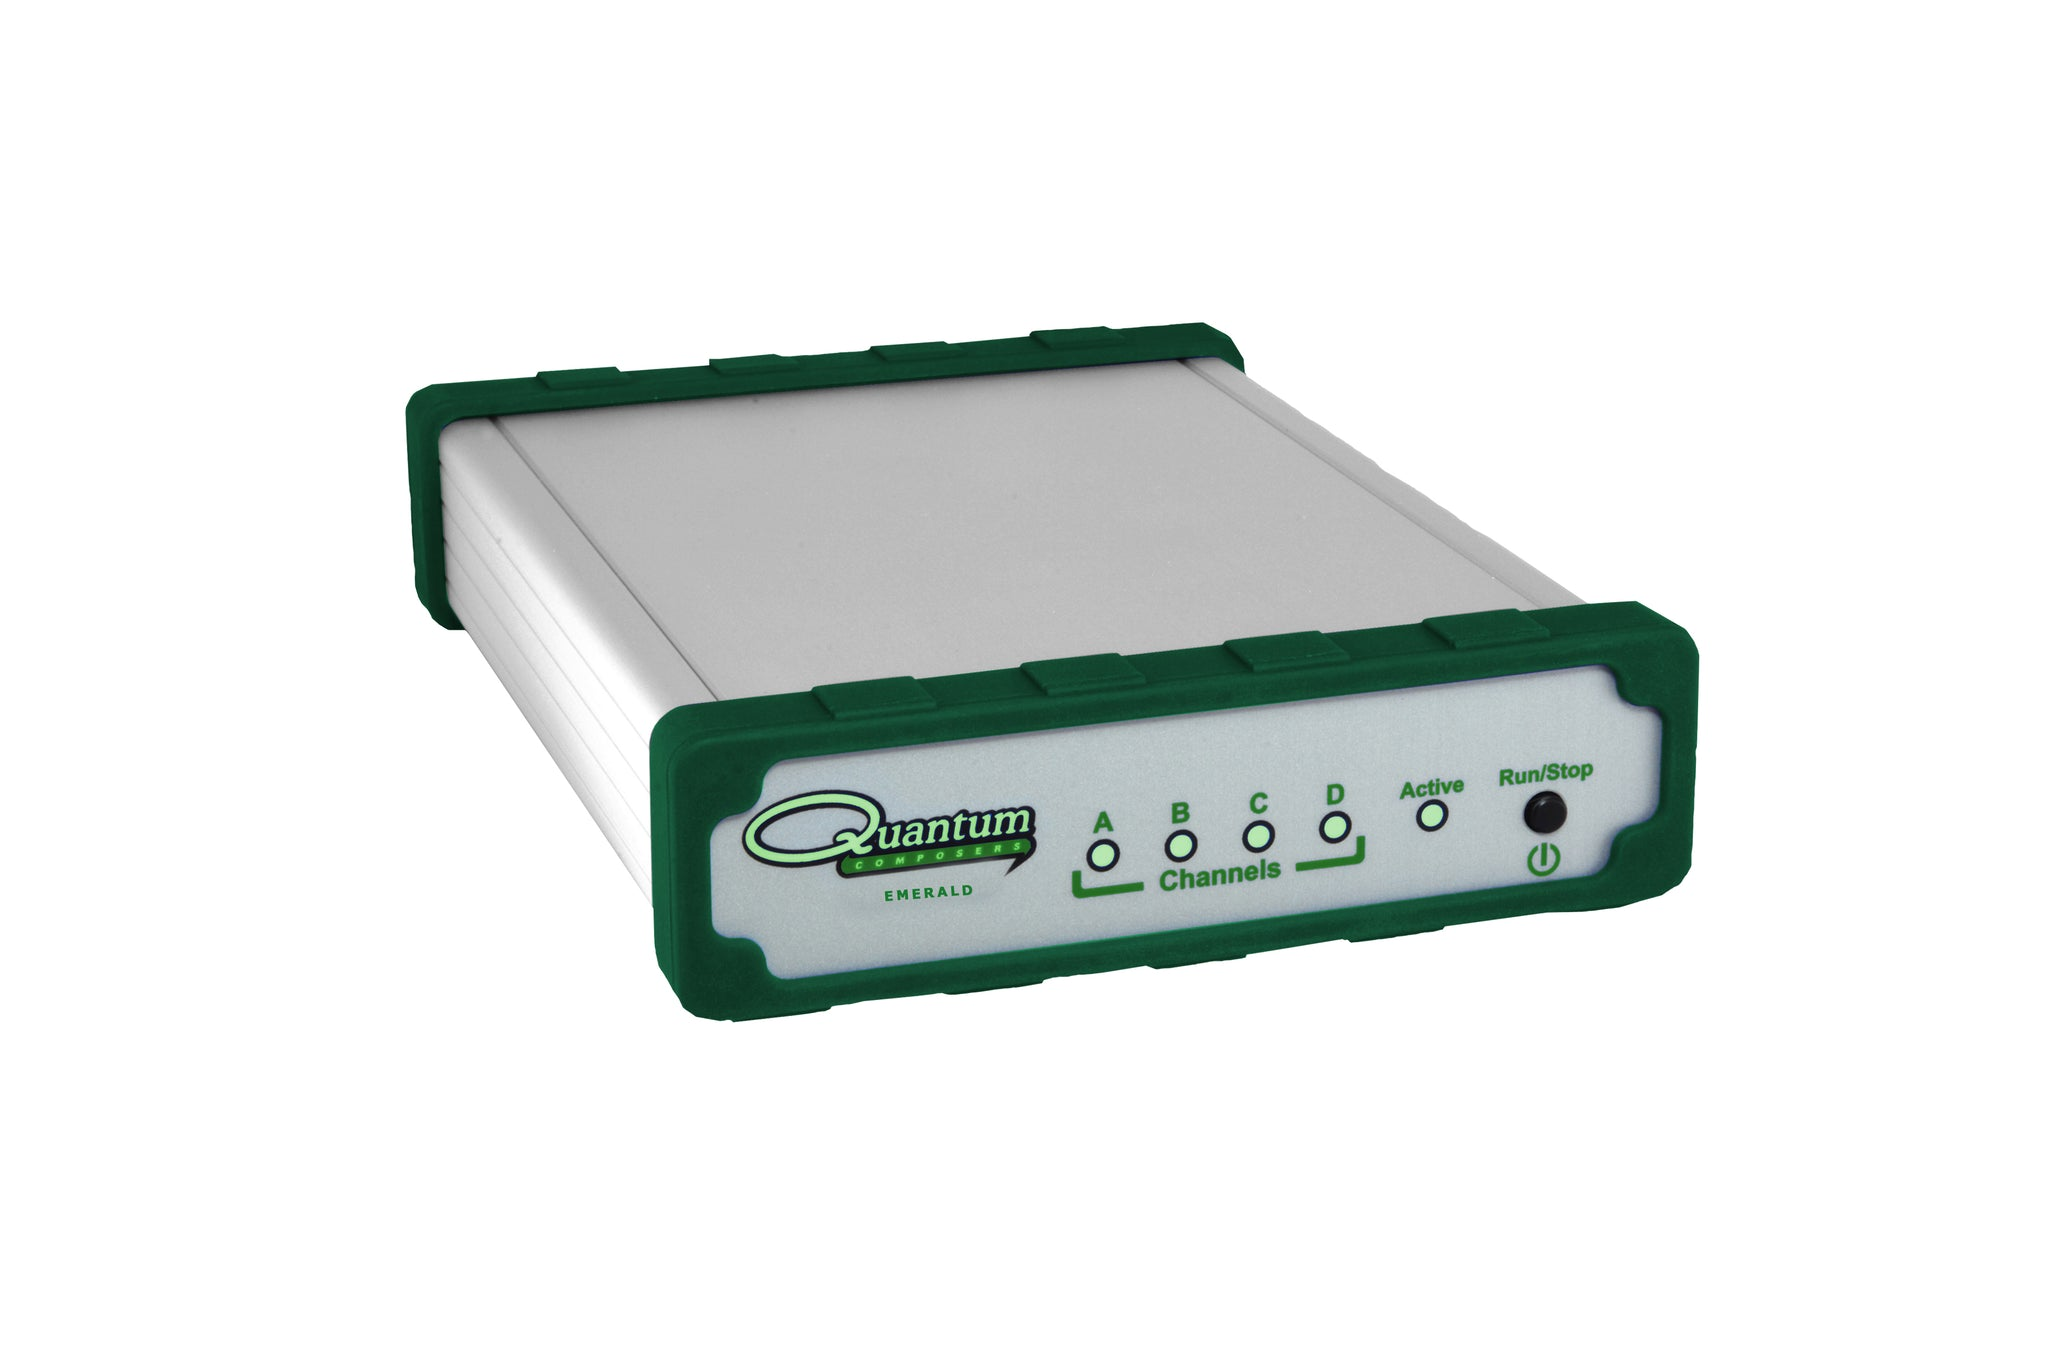 Quantum Composers Emerald Series High Resolution Pulse Generator